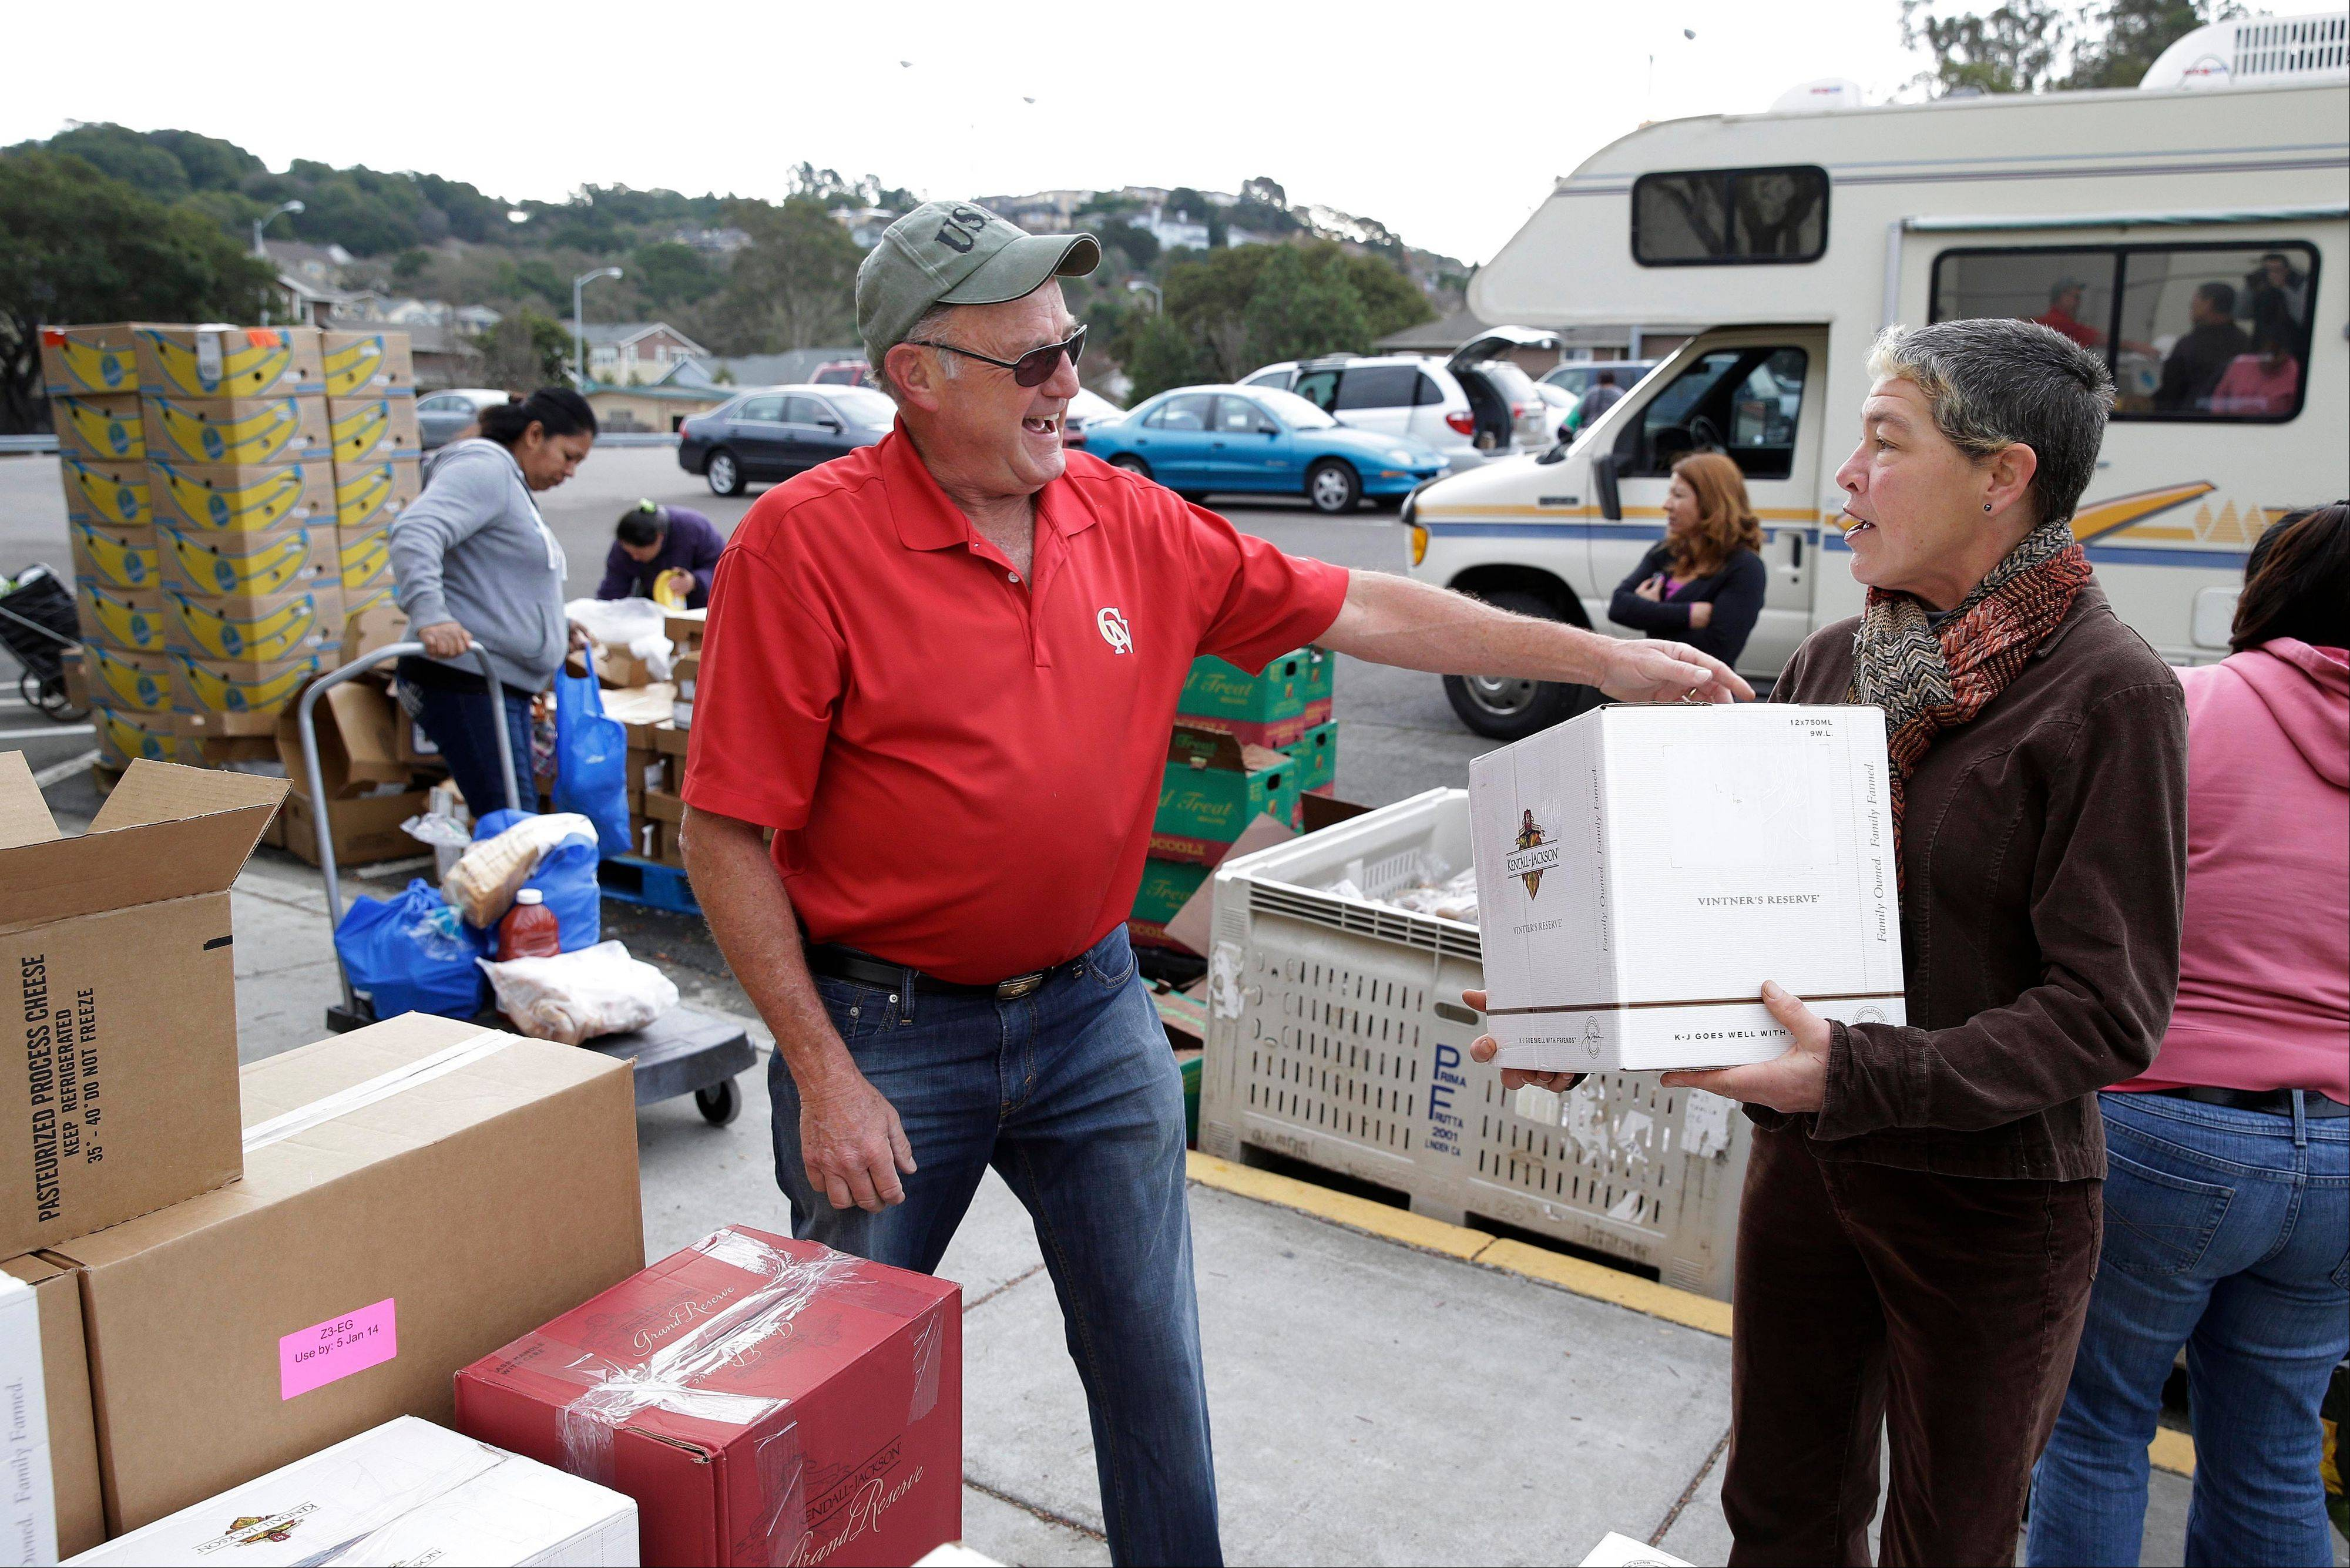 Steve Bosshard, center, distributes a specially prepared box of food at a food bank distribution Wednesday in Petaluma, Calif., as part of a research project with Feeding America to try to improve the health of diabetics in food-insecure families.